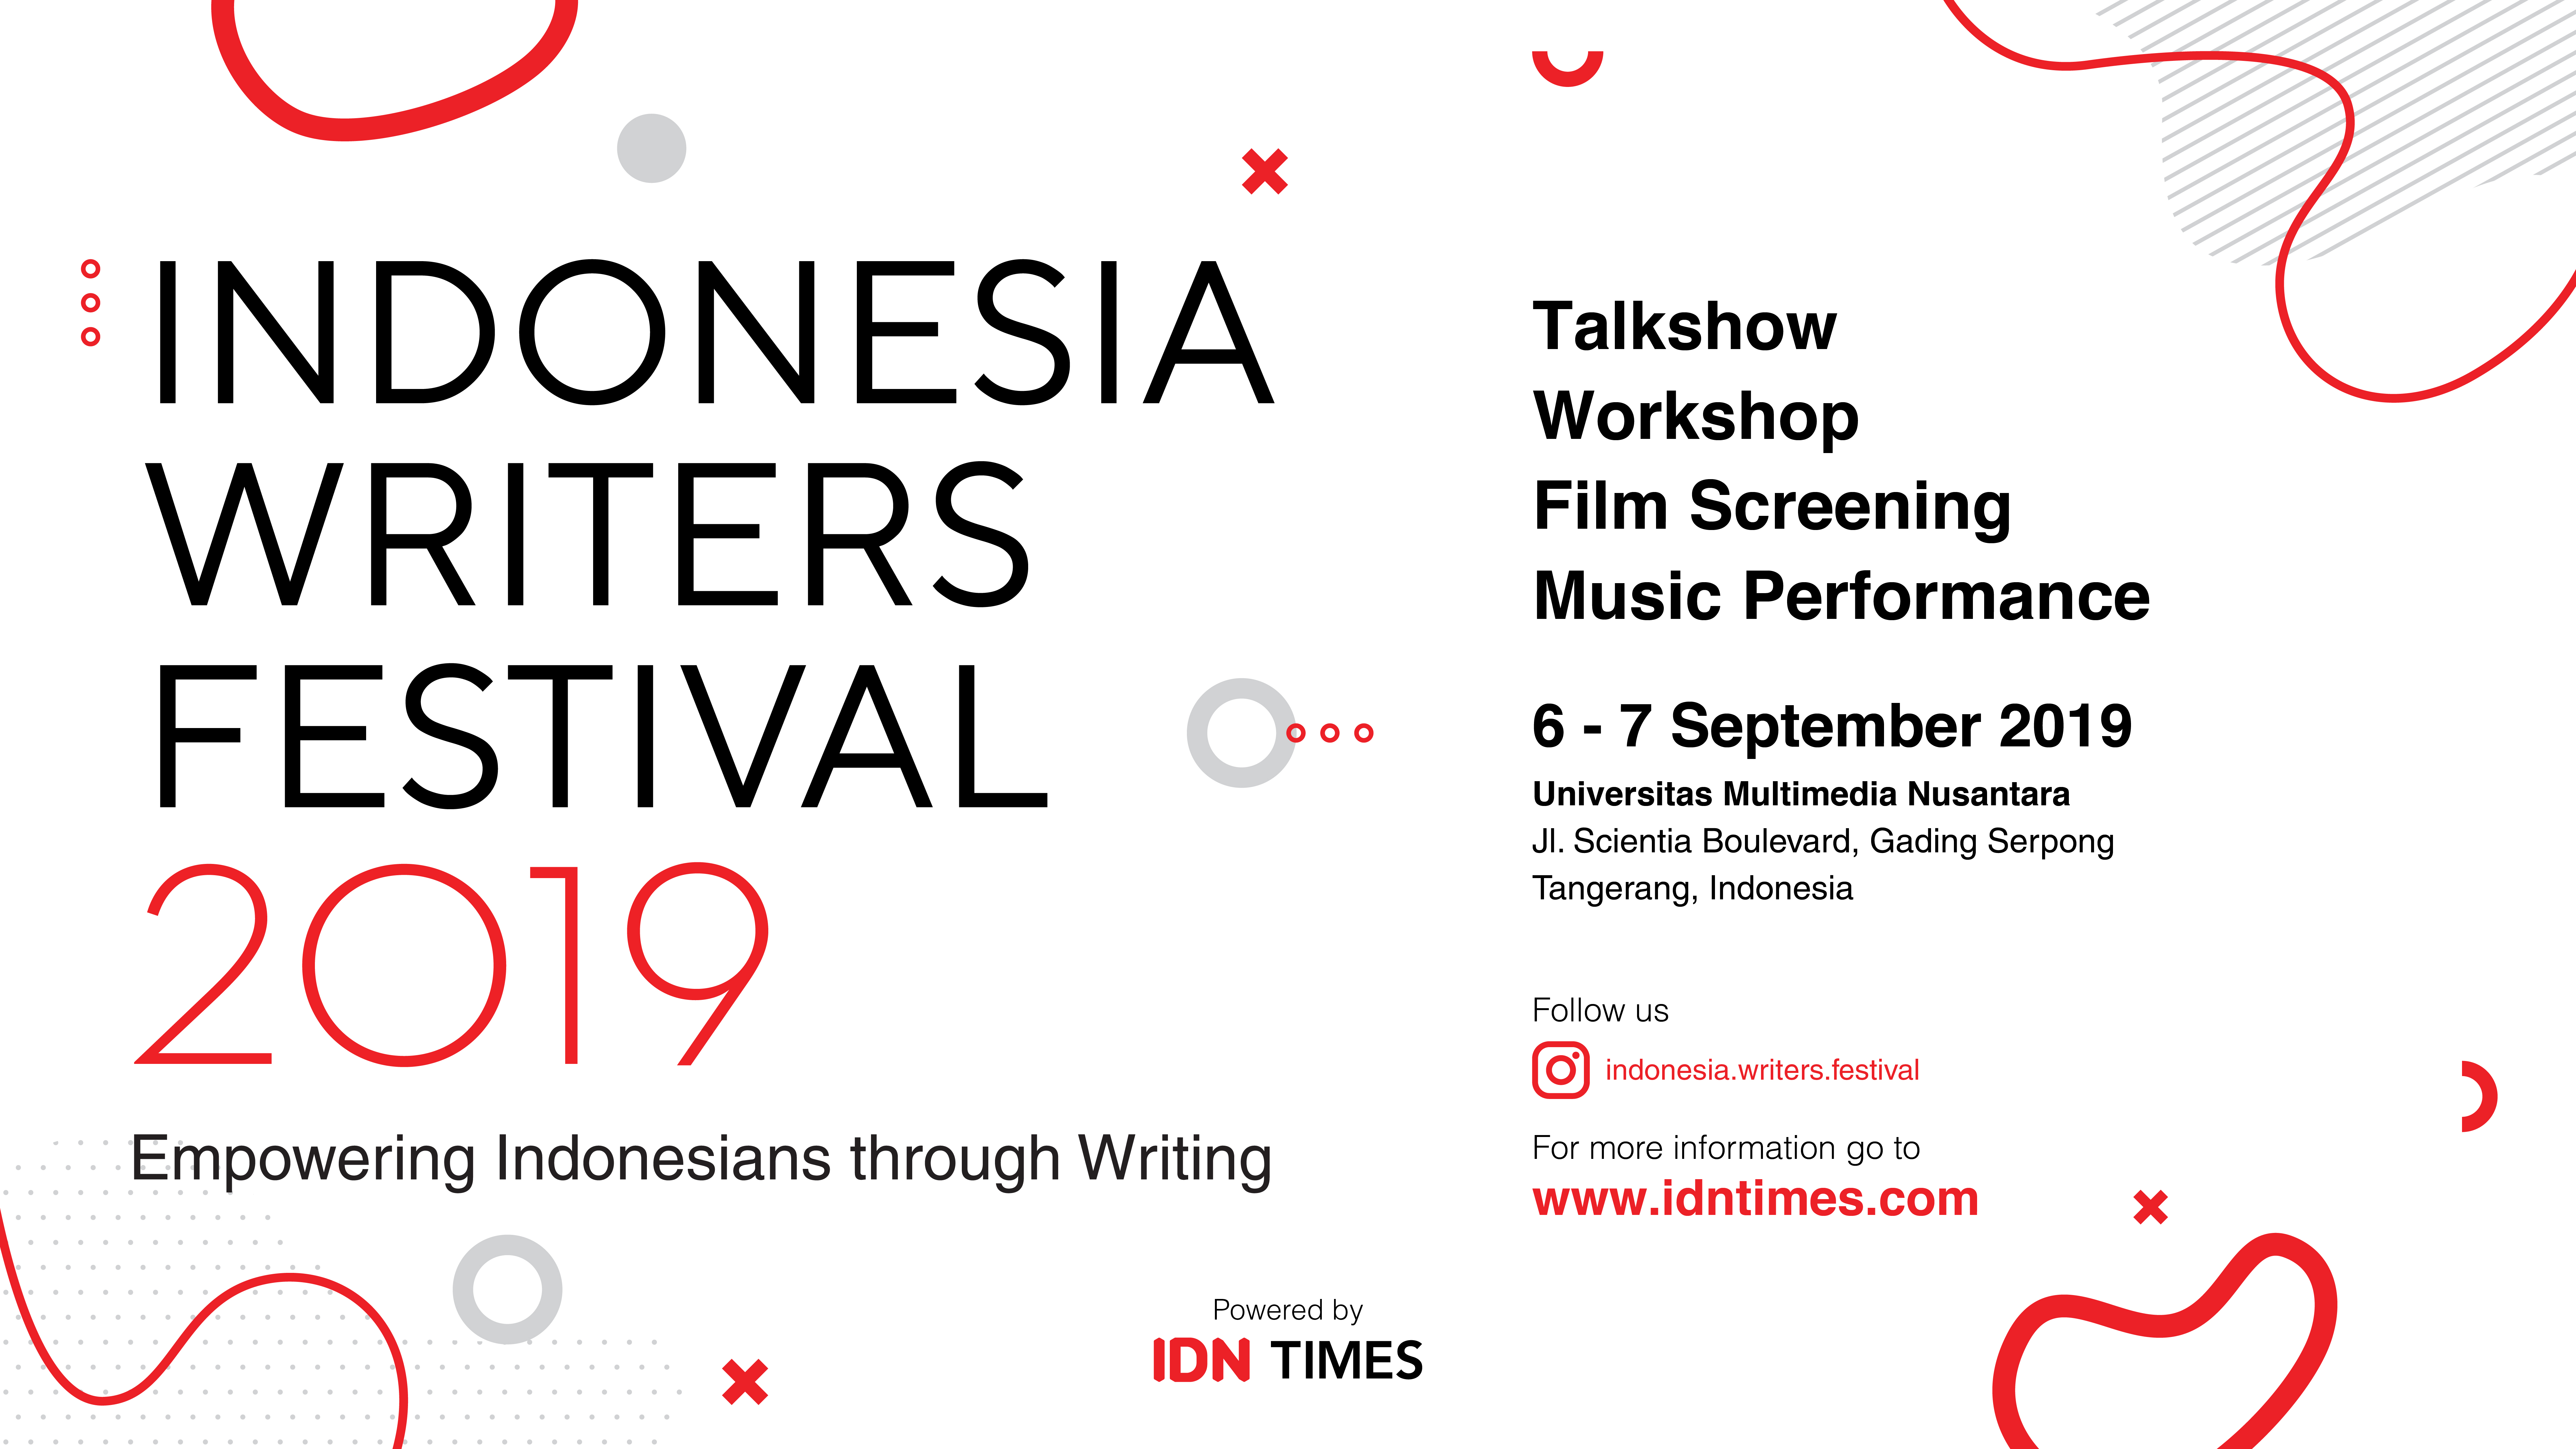 Indonesia Writers Festival by IDN Times is Back this September 2019